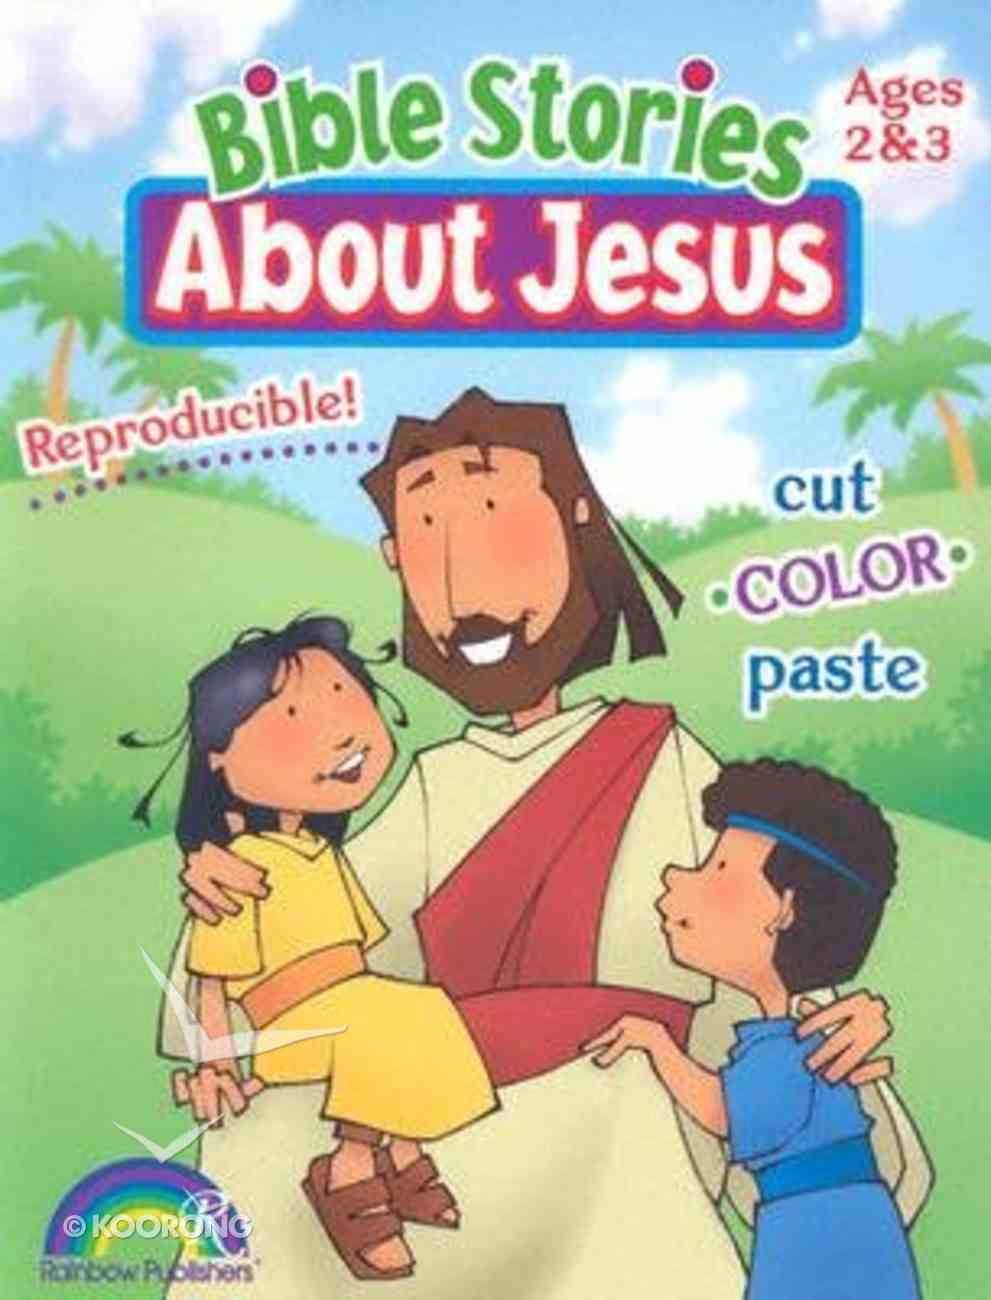 Bible Stories About Jesus: Ages 2&3 (Reproducible) Paperback